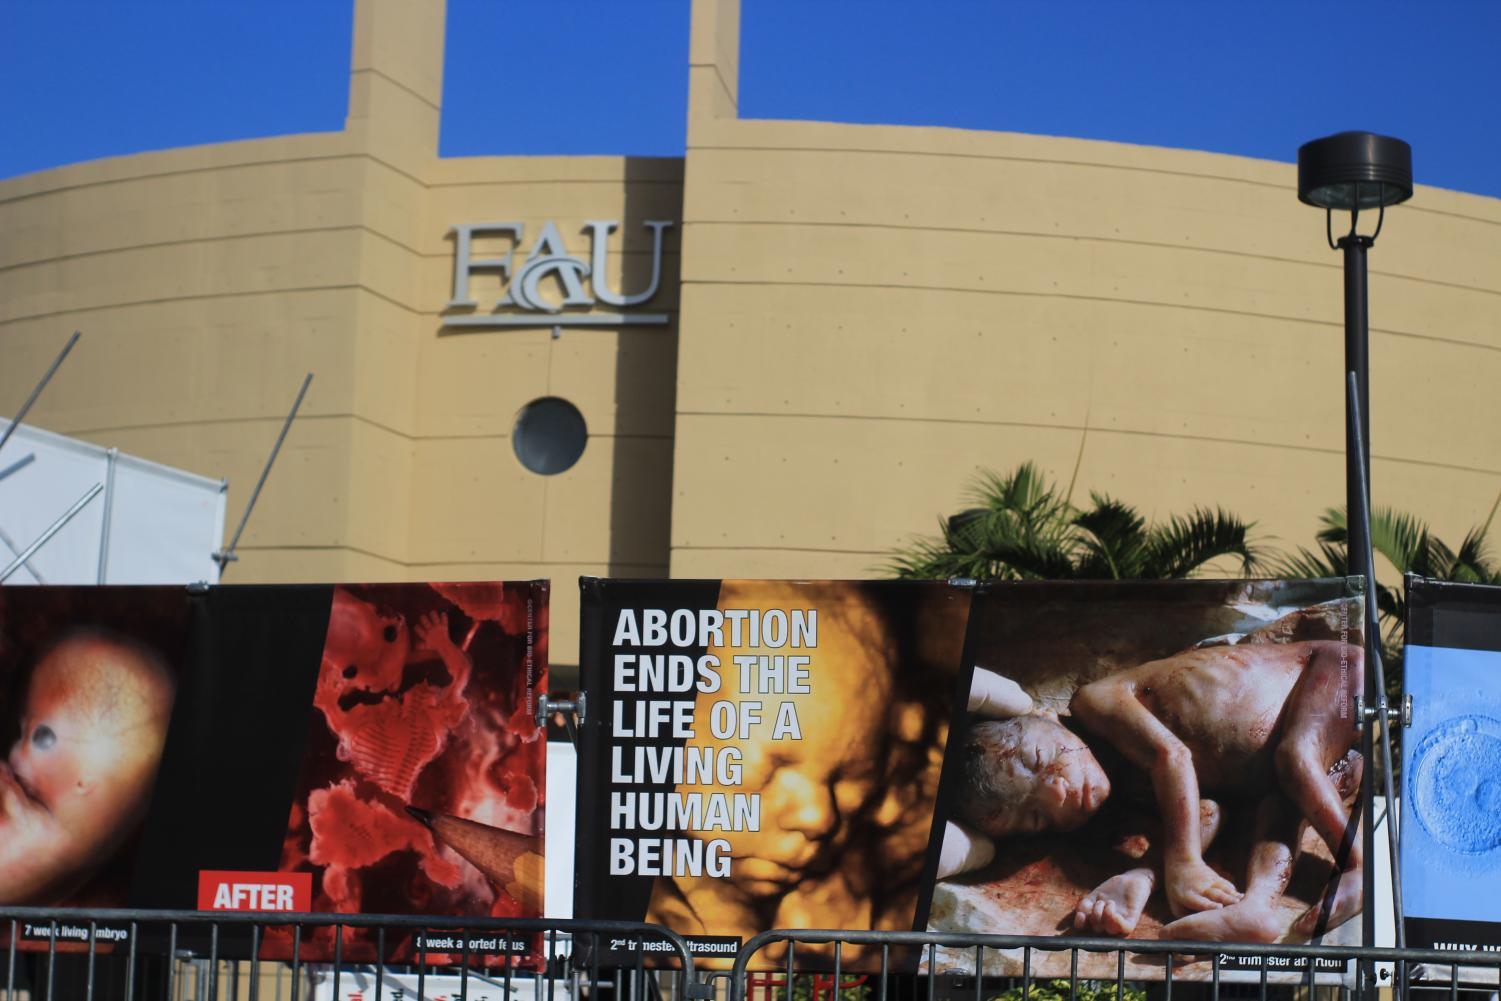 The abortion protest on Thursday at the Boca campus. Photo by Eston Parker III